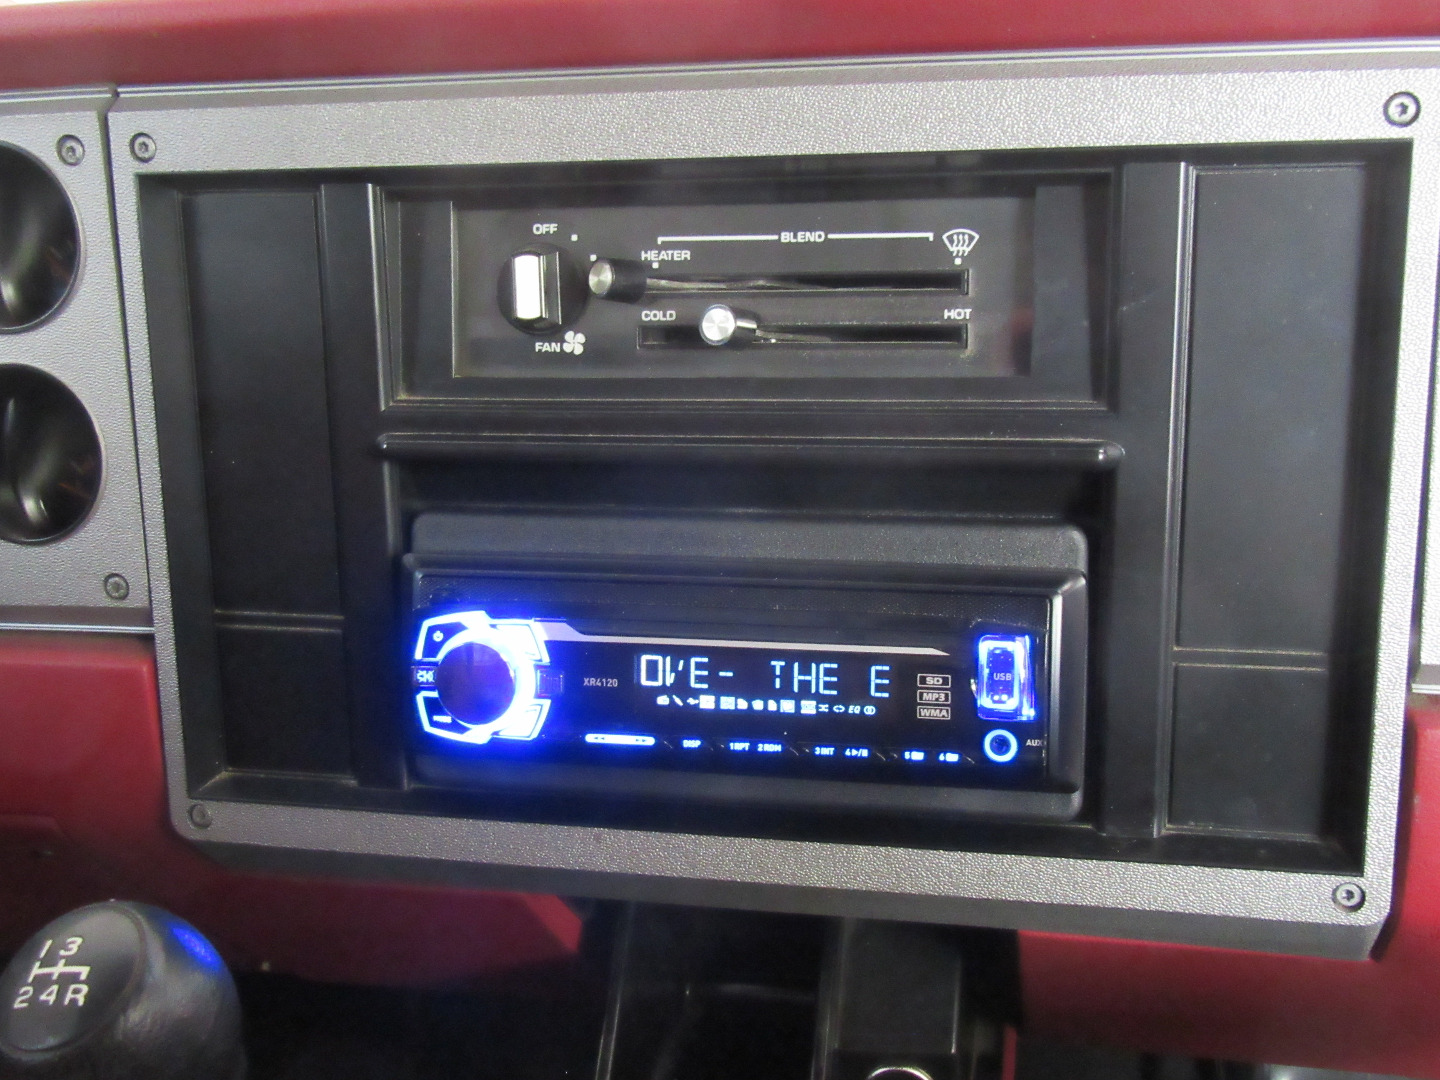 Dual XR4120 Digital media receiver (does not play CDs) at